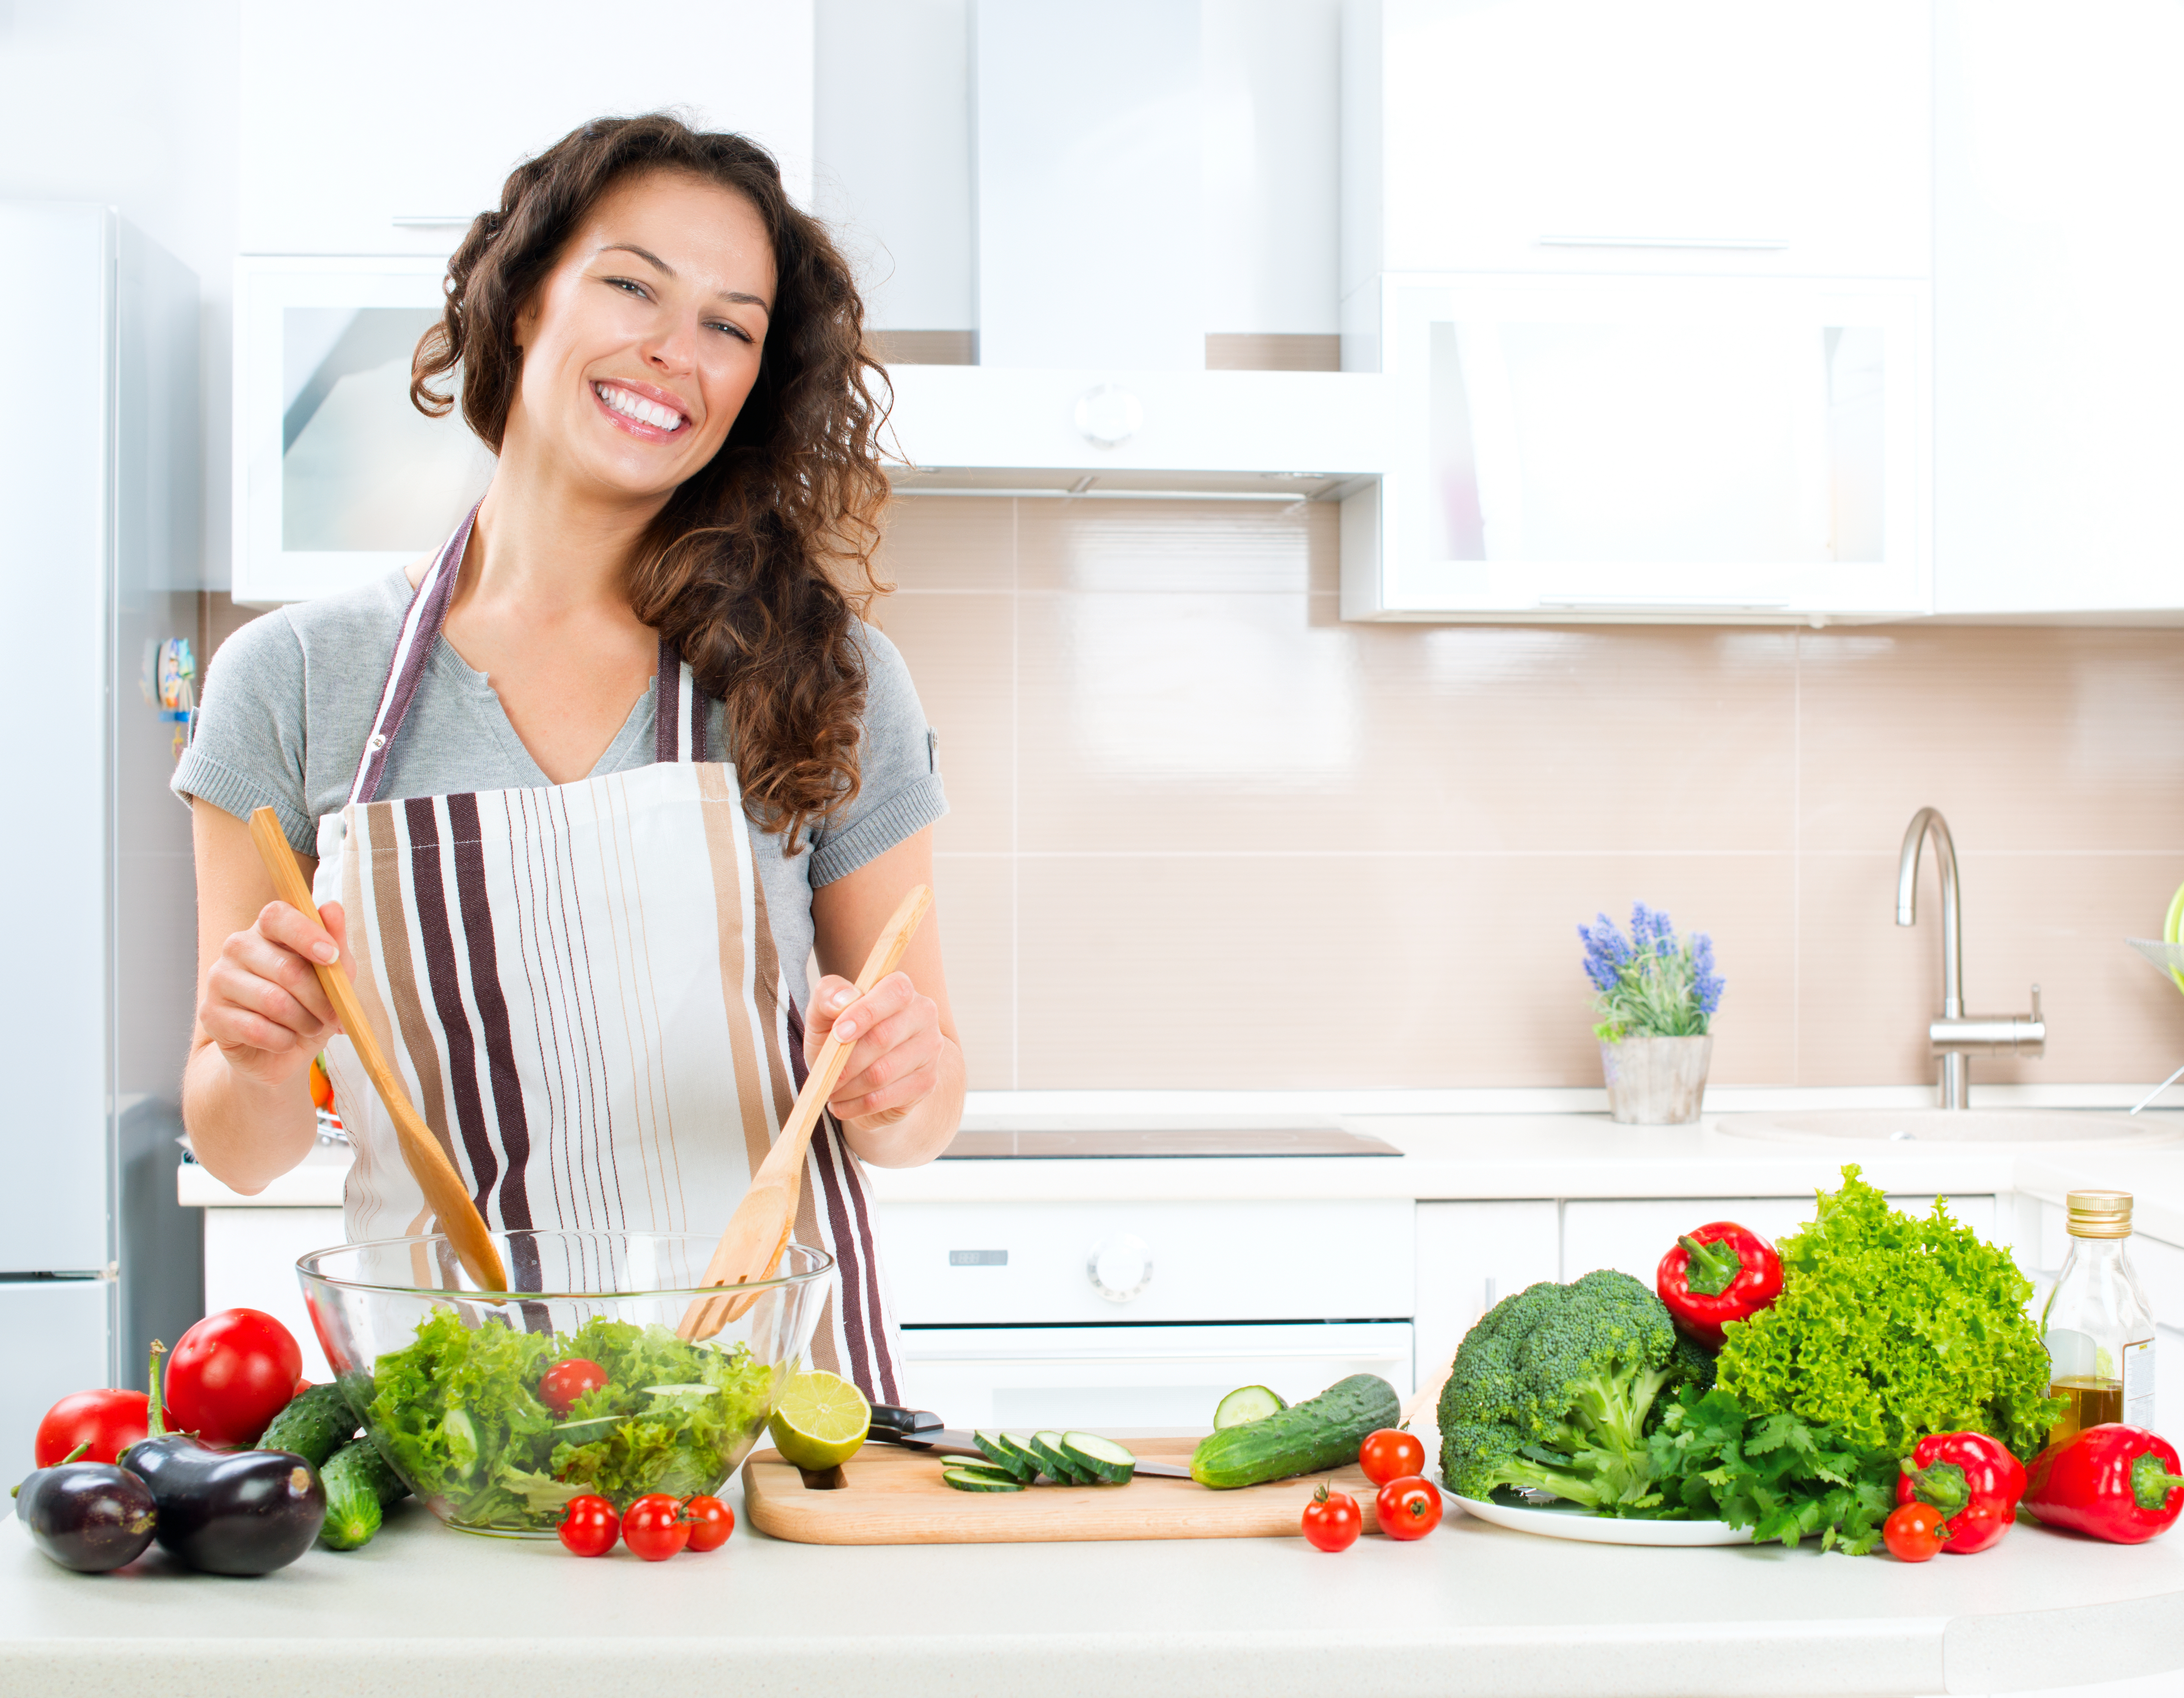 Improve Your Life With A Healthy Diet